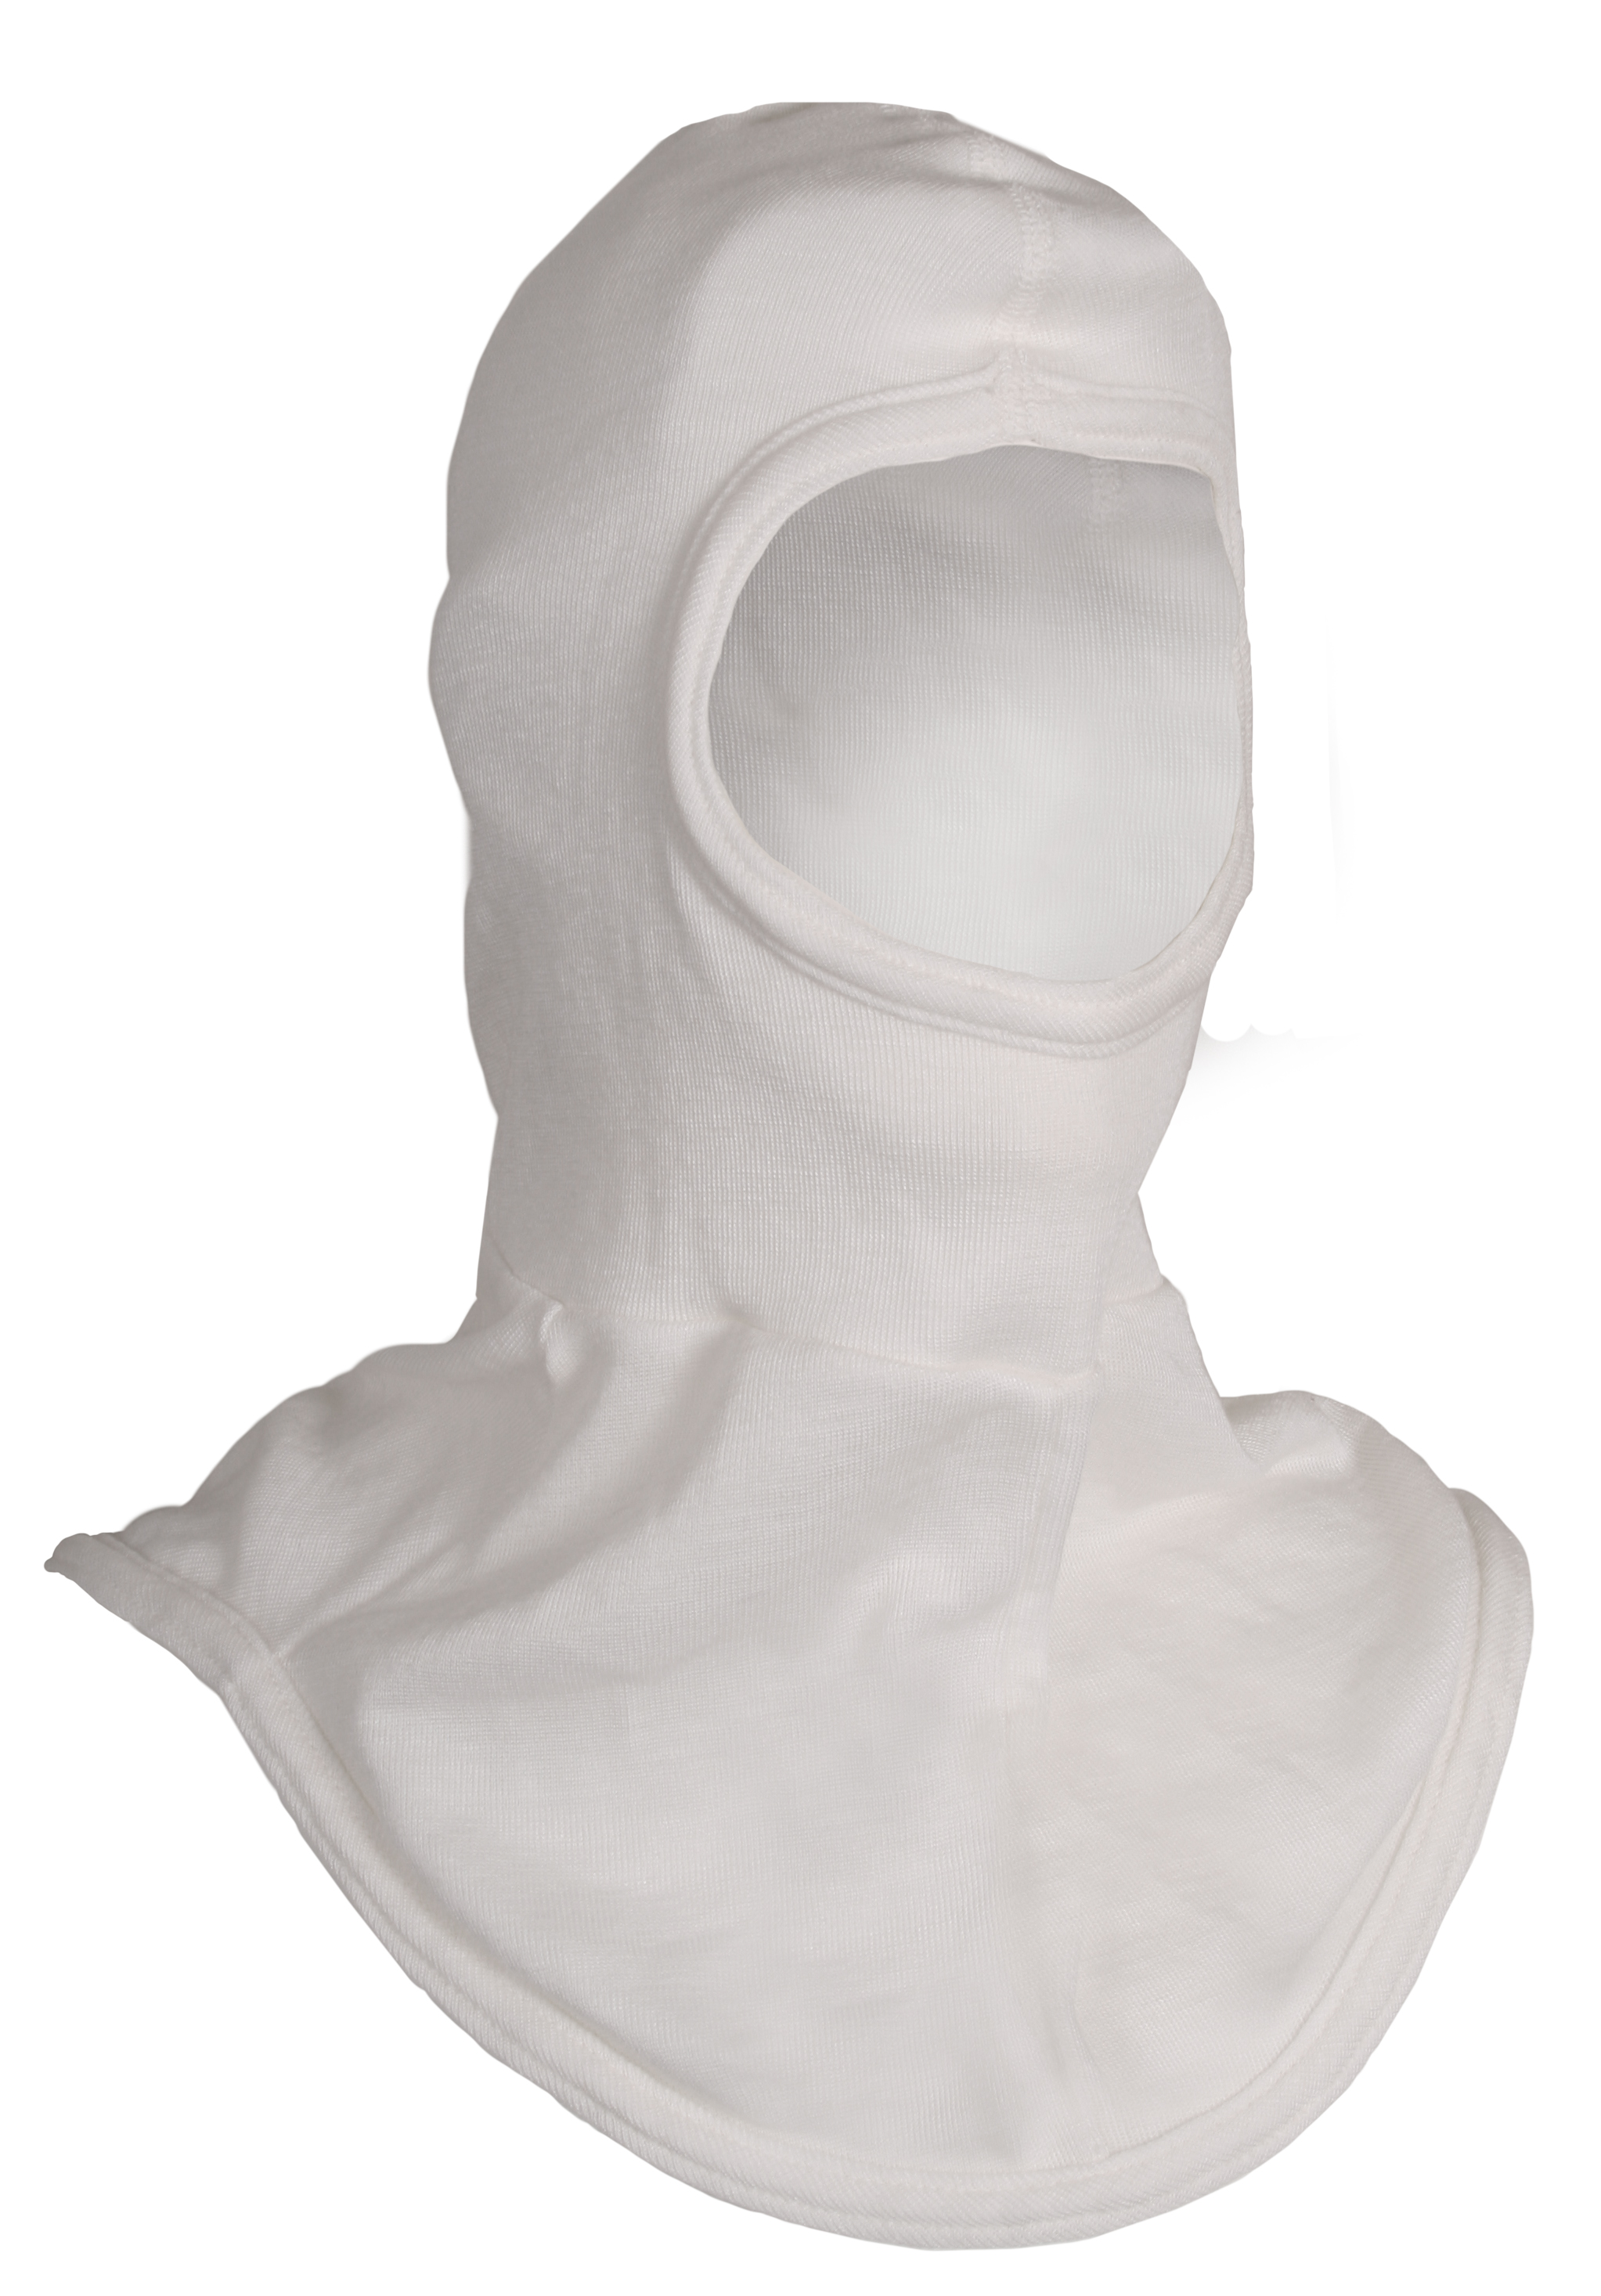 High Heat Knit Hood in Nomex - Fire Resistant